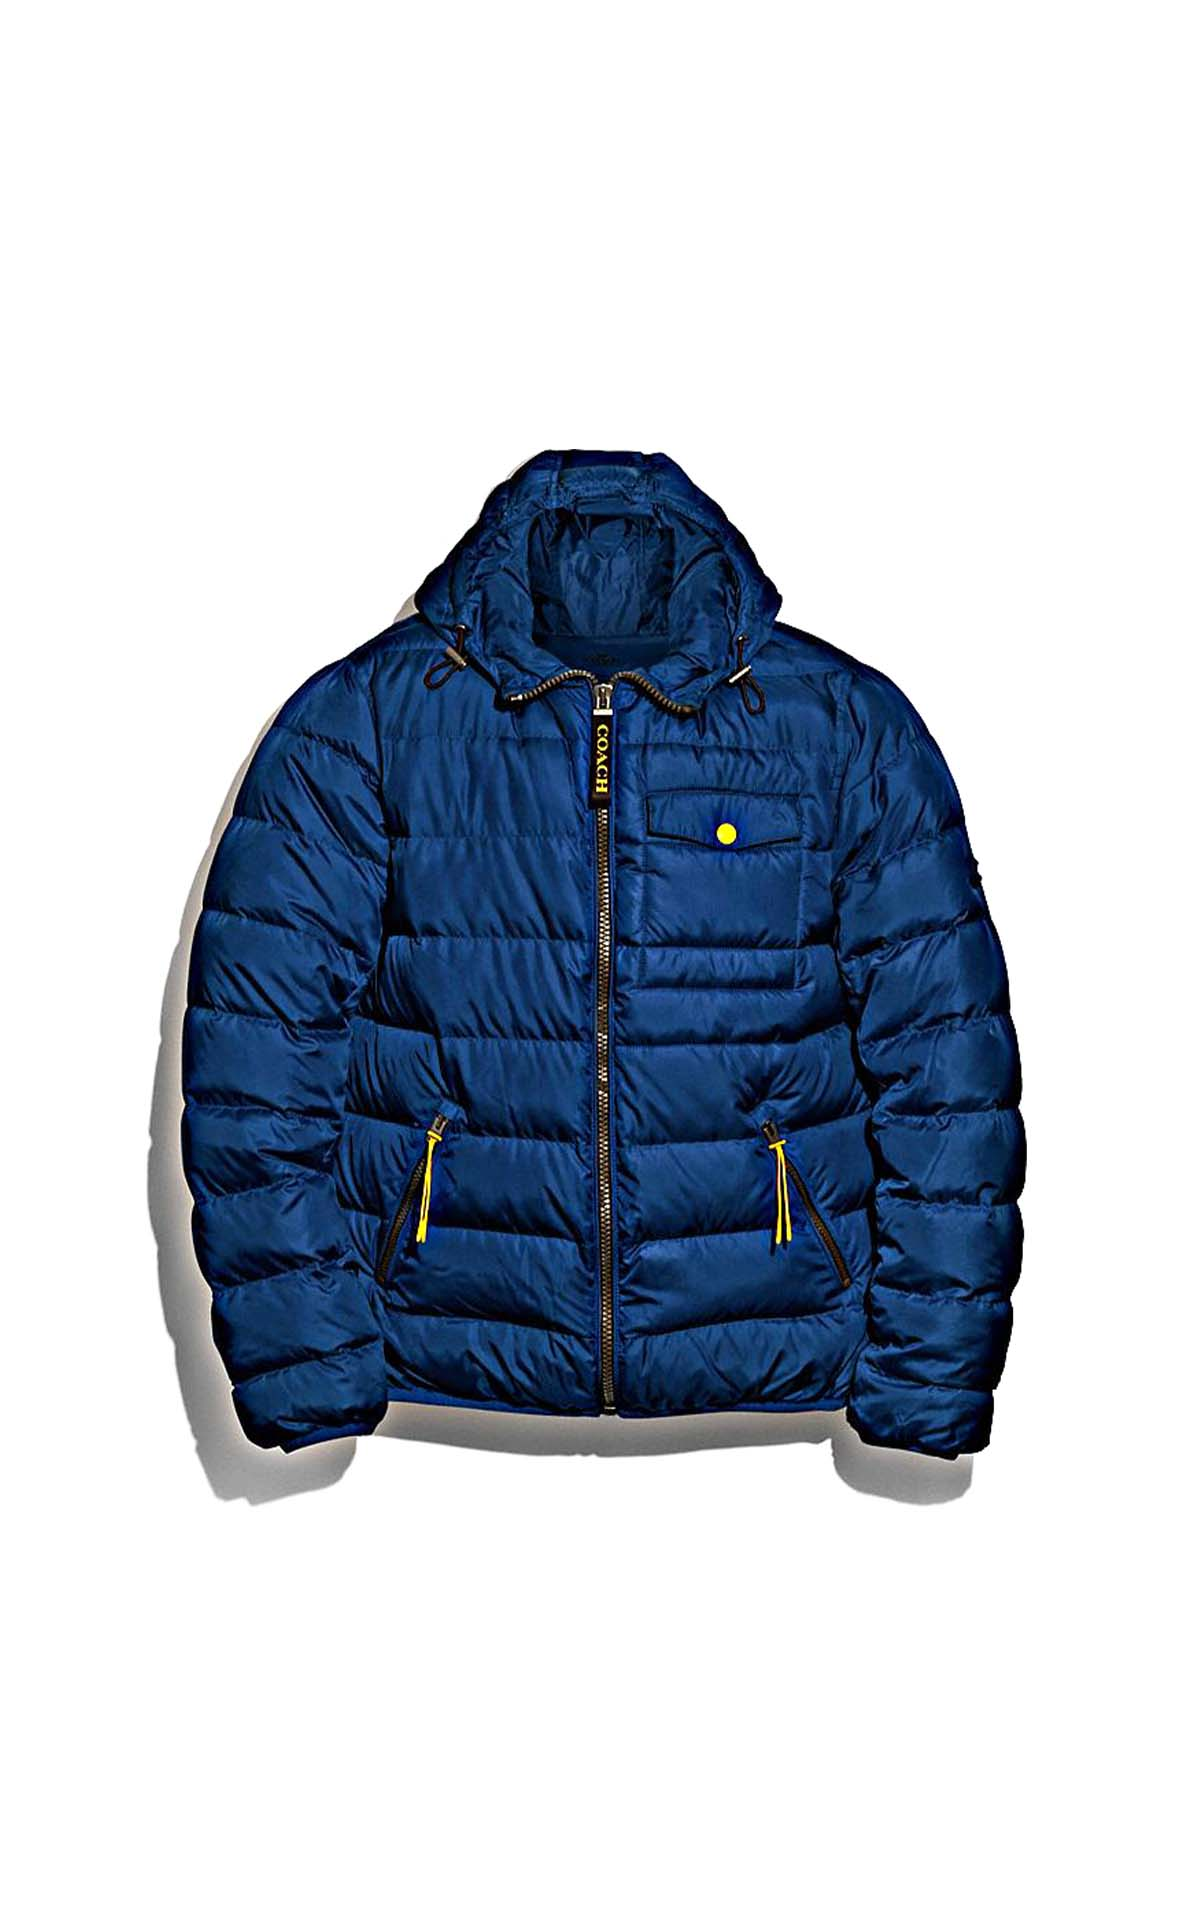 Coach Lightweight Down Jacket